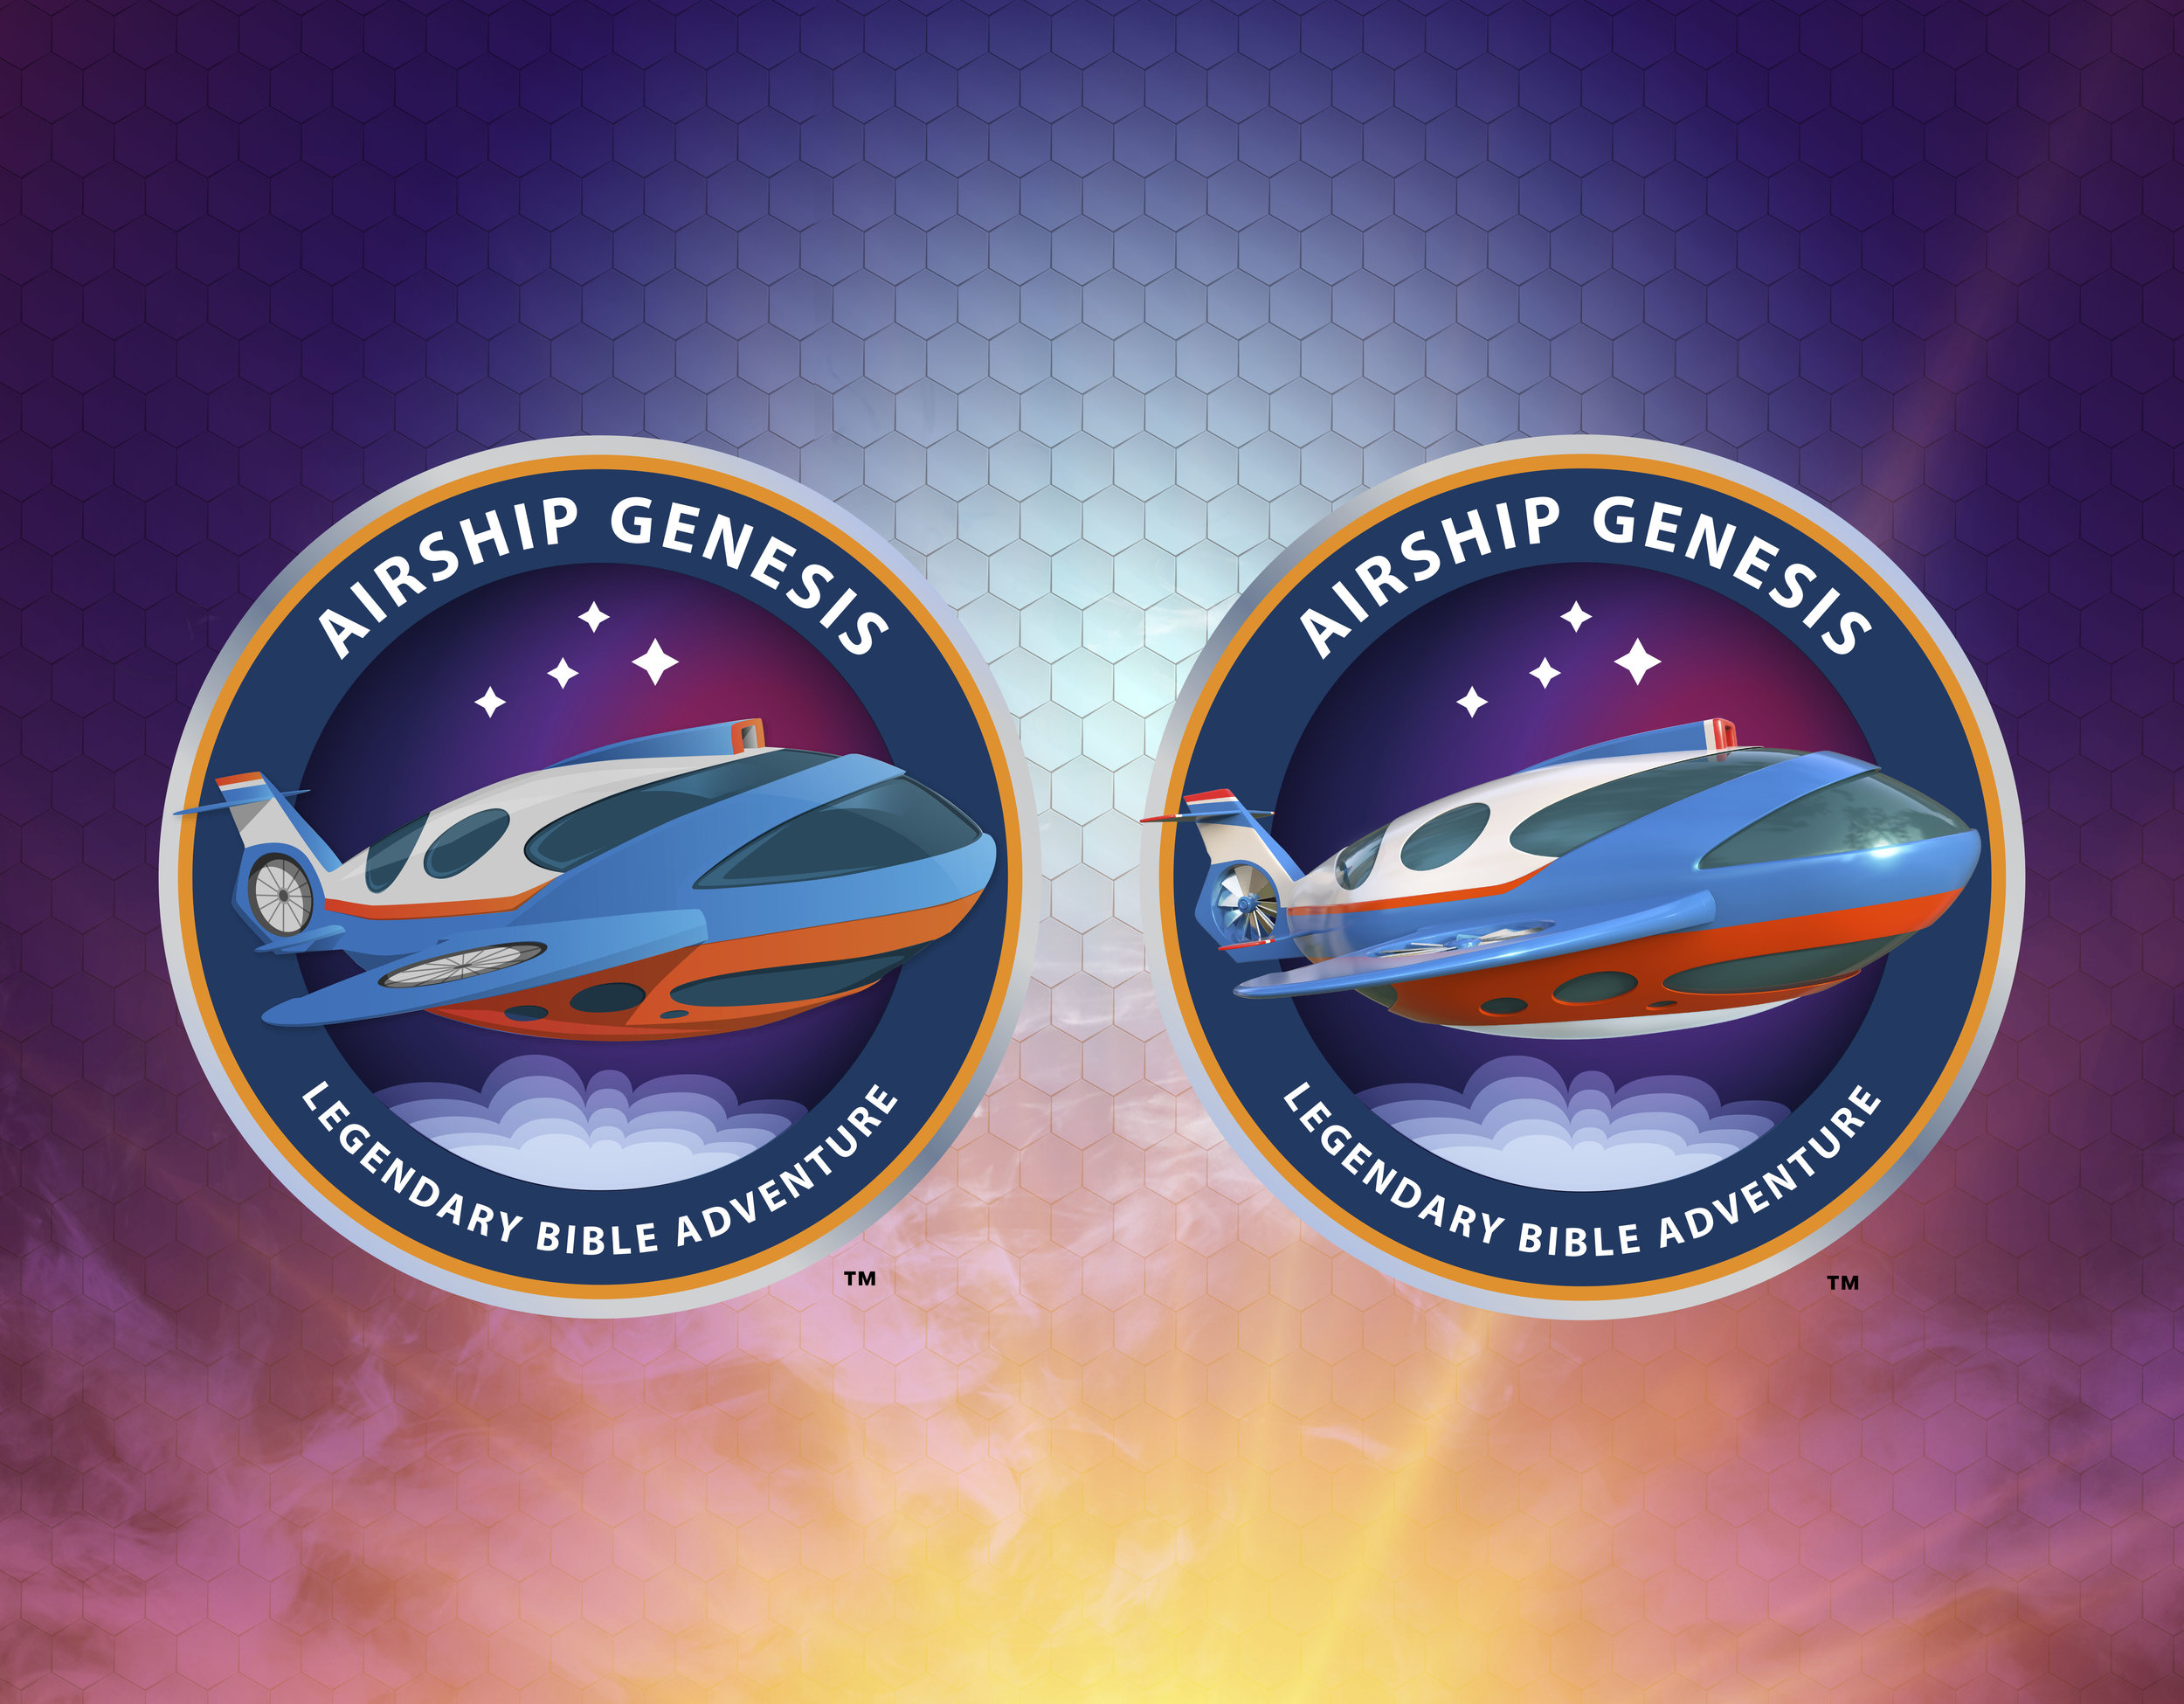 Airship Genesis Logo Branding  - Left: 2D Illustrated version | Right: 3D rendered version